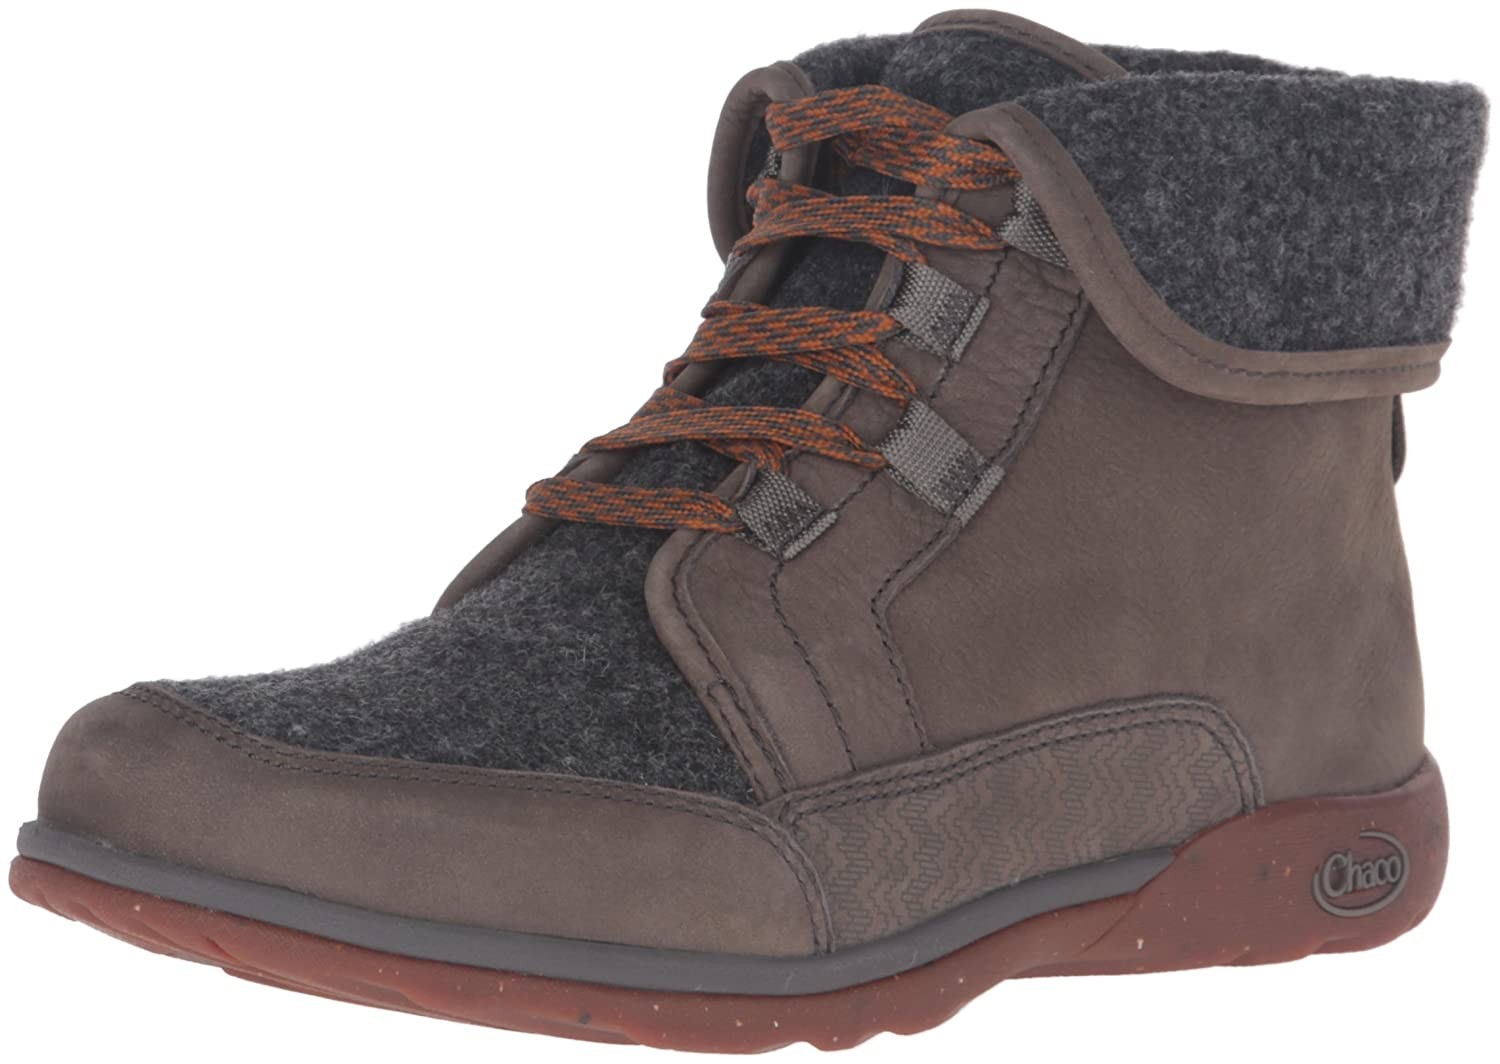 Chaco Women's Barbary Boot B0197LRHDK 9.5 B(M) US|Nickel Gray